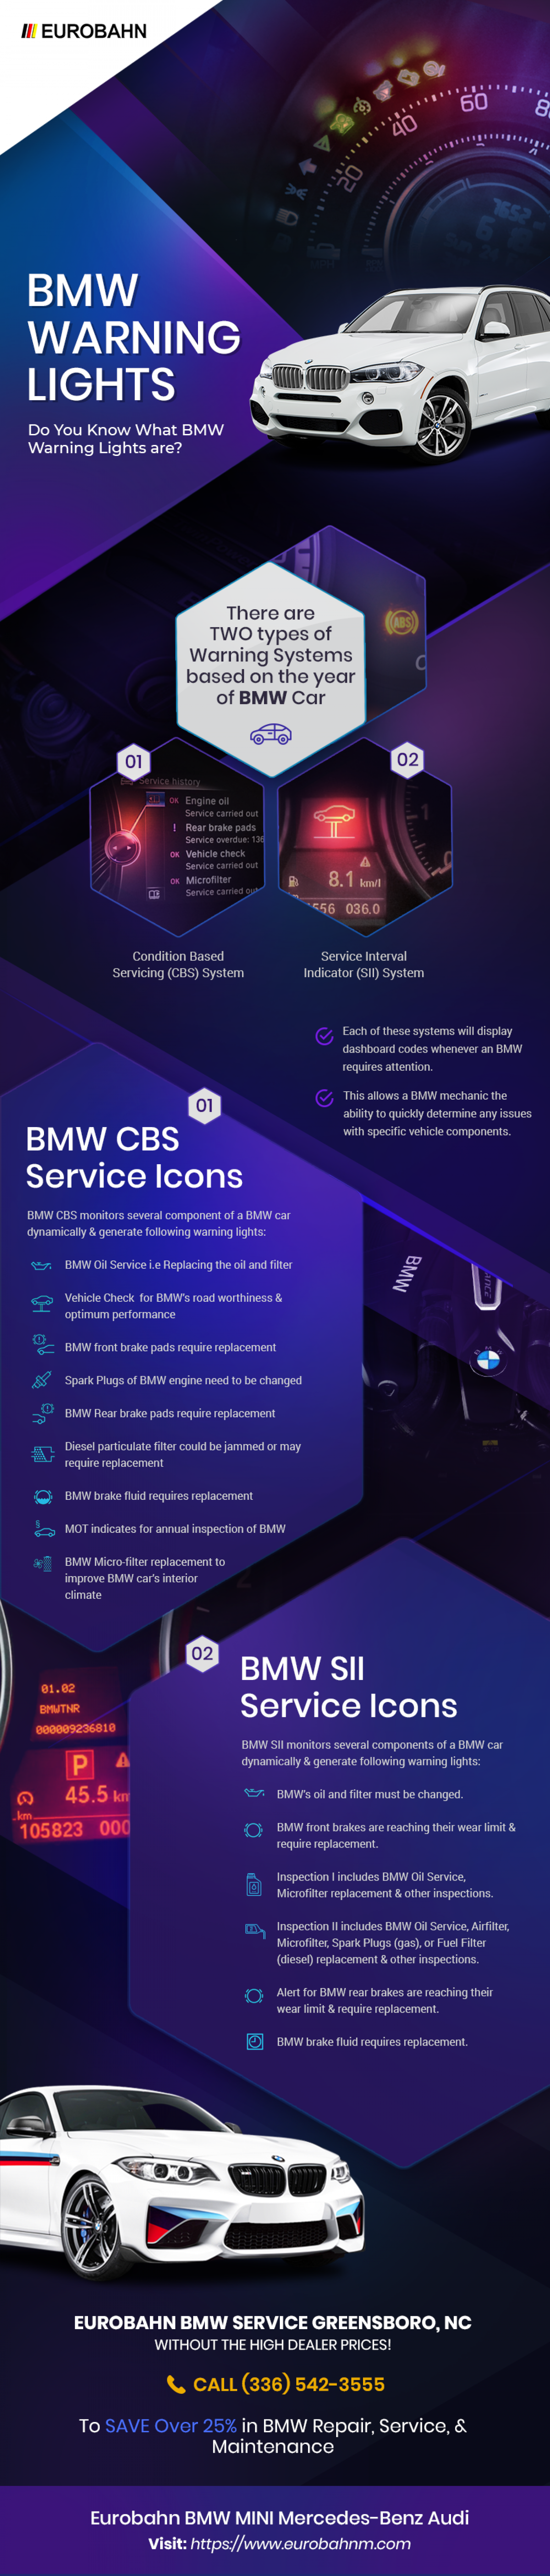 BMW Warning Lights to Understand the Requirement of BMW Service Infographic